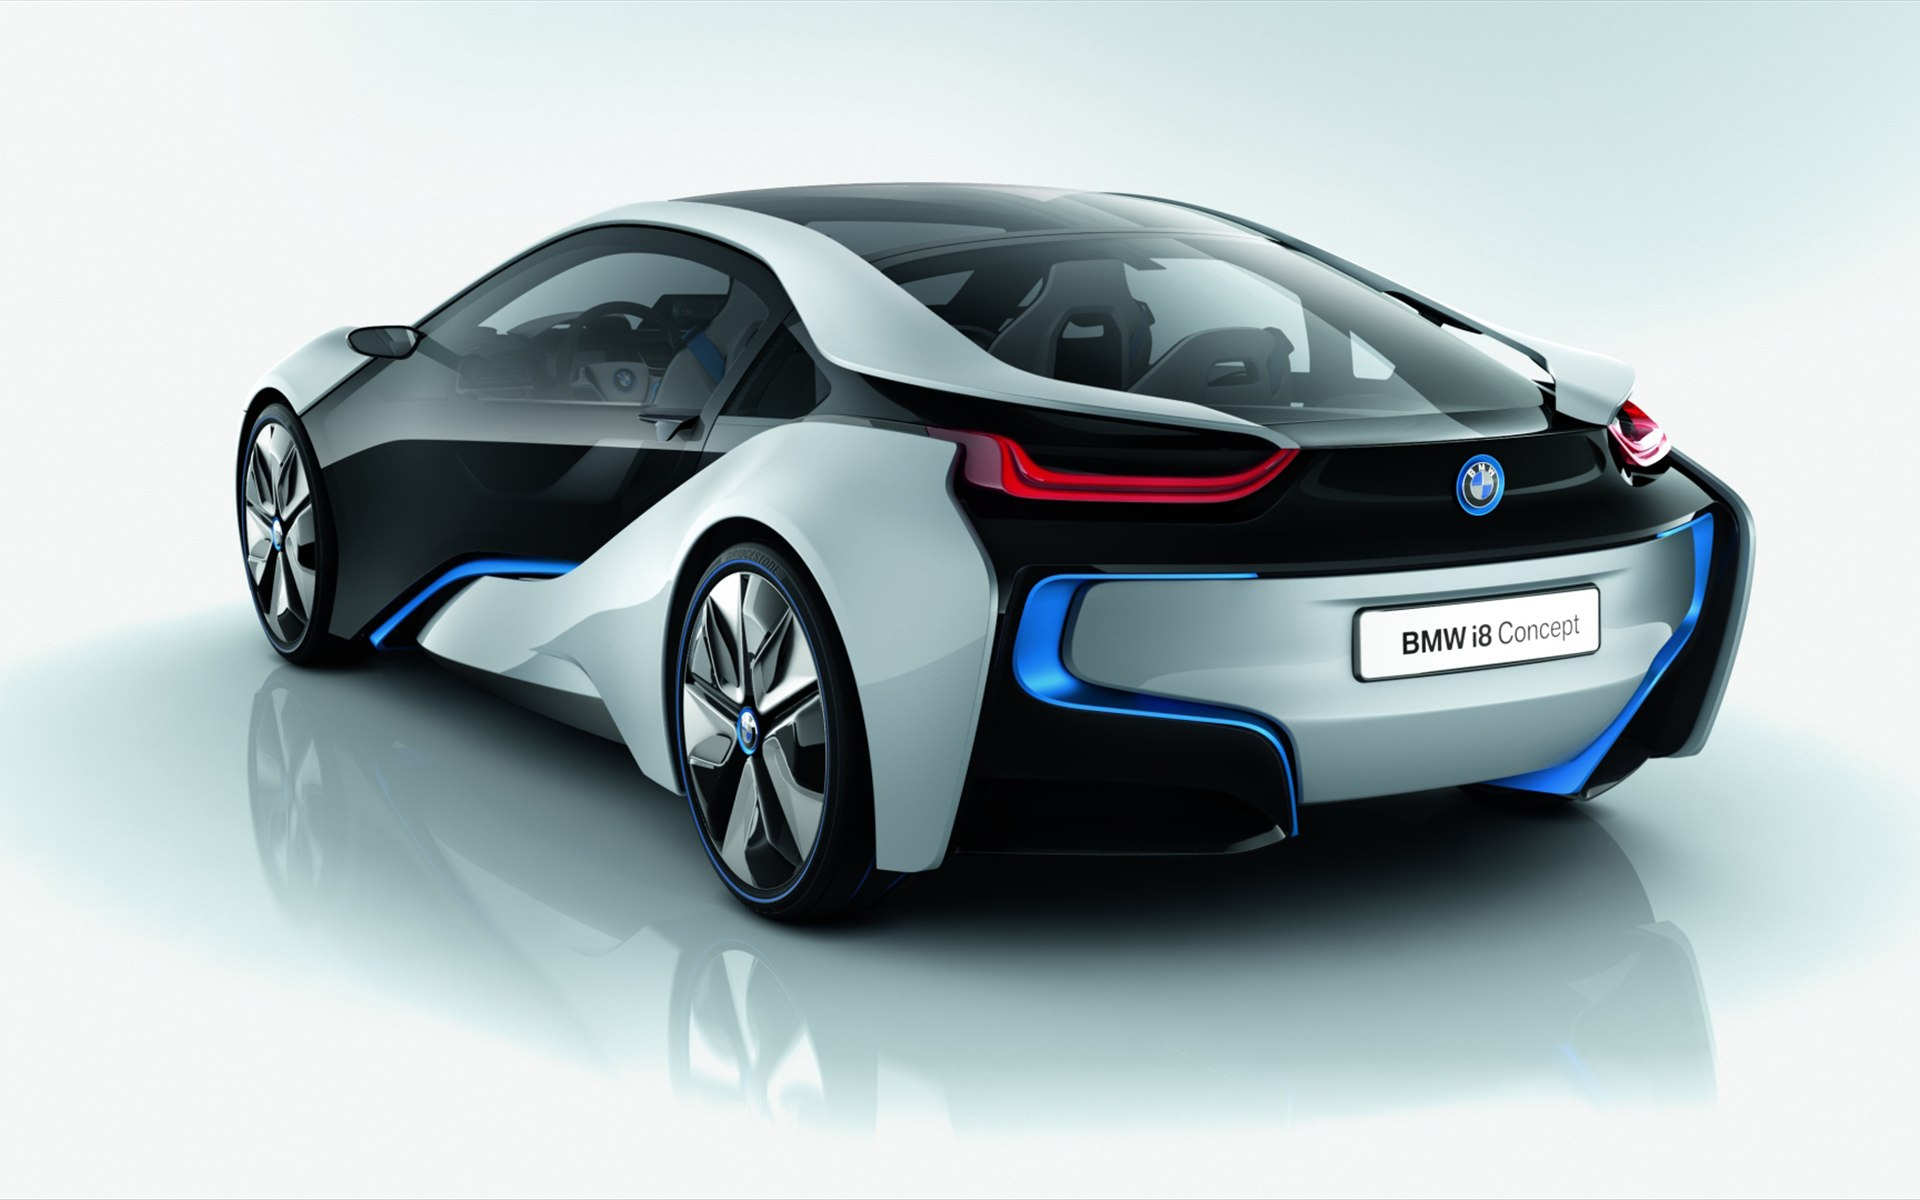 1920x1200 - BMW i3 Concept Wallpapers 11